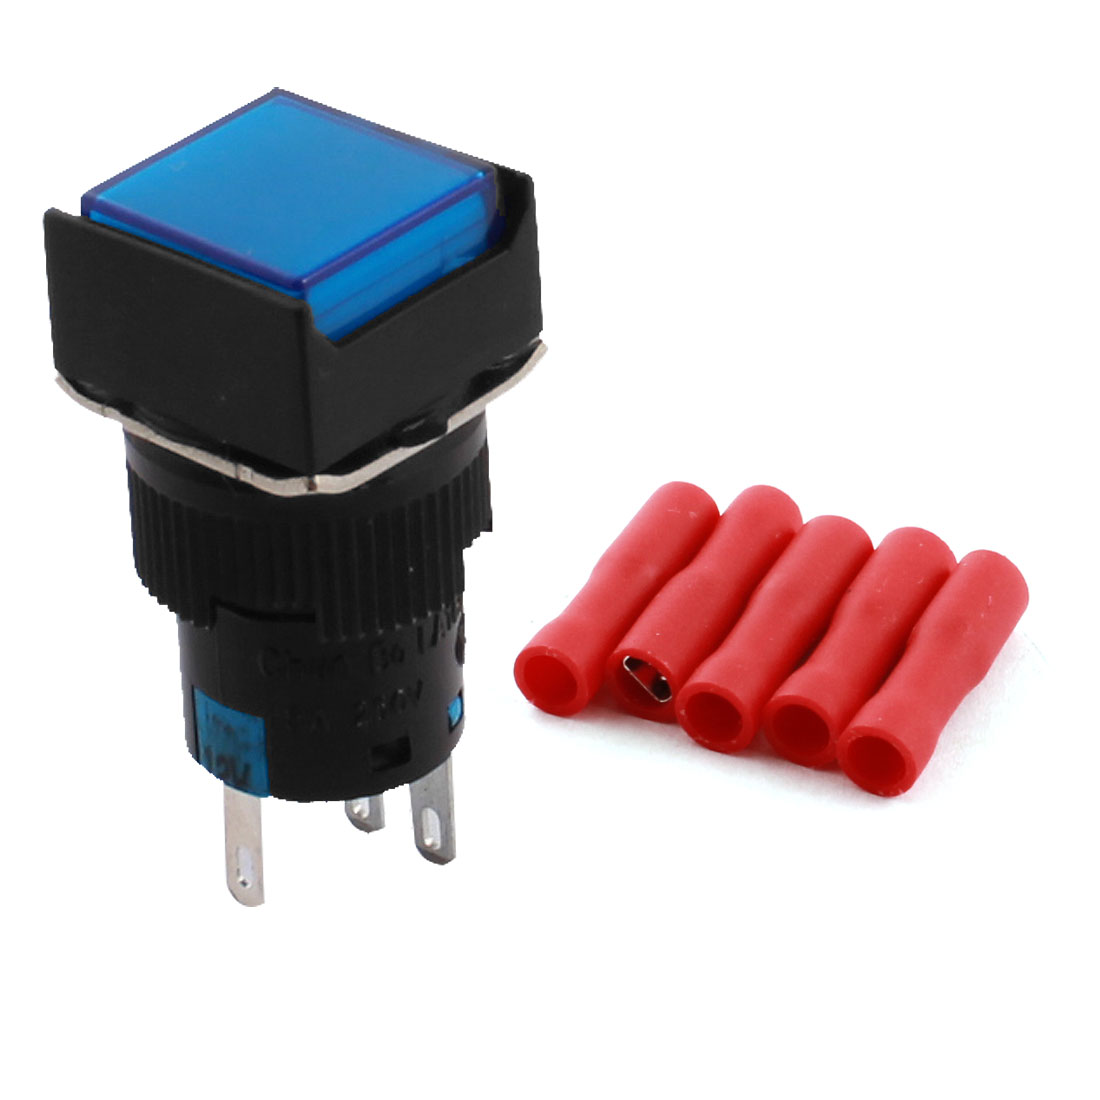 DC 12V Blue Pilot Light Lamp 5Pin 16mm Panel Mount SPDT Momentary Square Push Button Switch + 5pcs Connectors